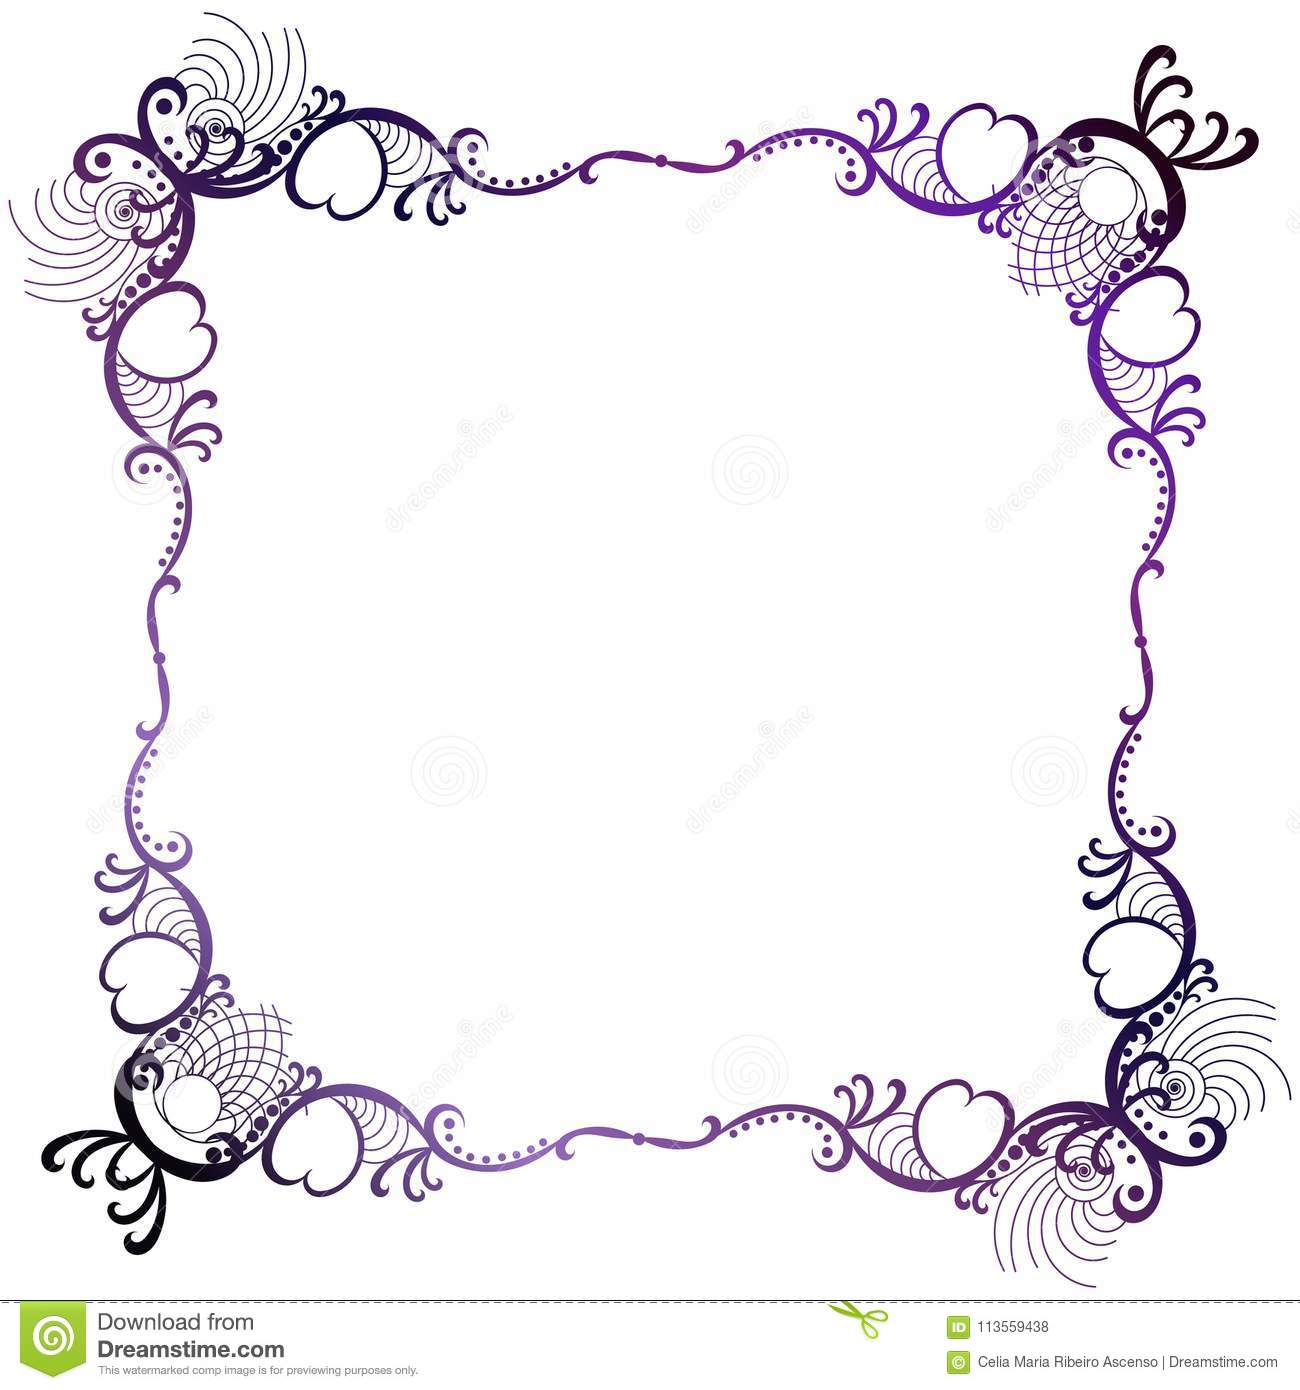 Border Frame Victorian Intended Mystical Purple Victorian Style Lacy Square Border Frame Border Purple Lace Square Stock Illustration